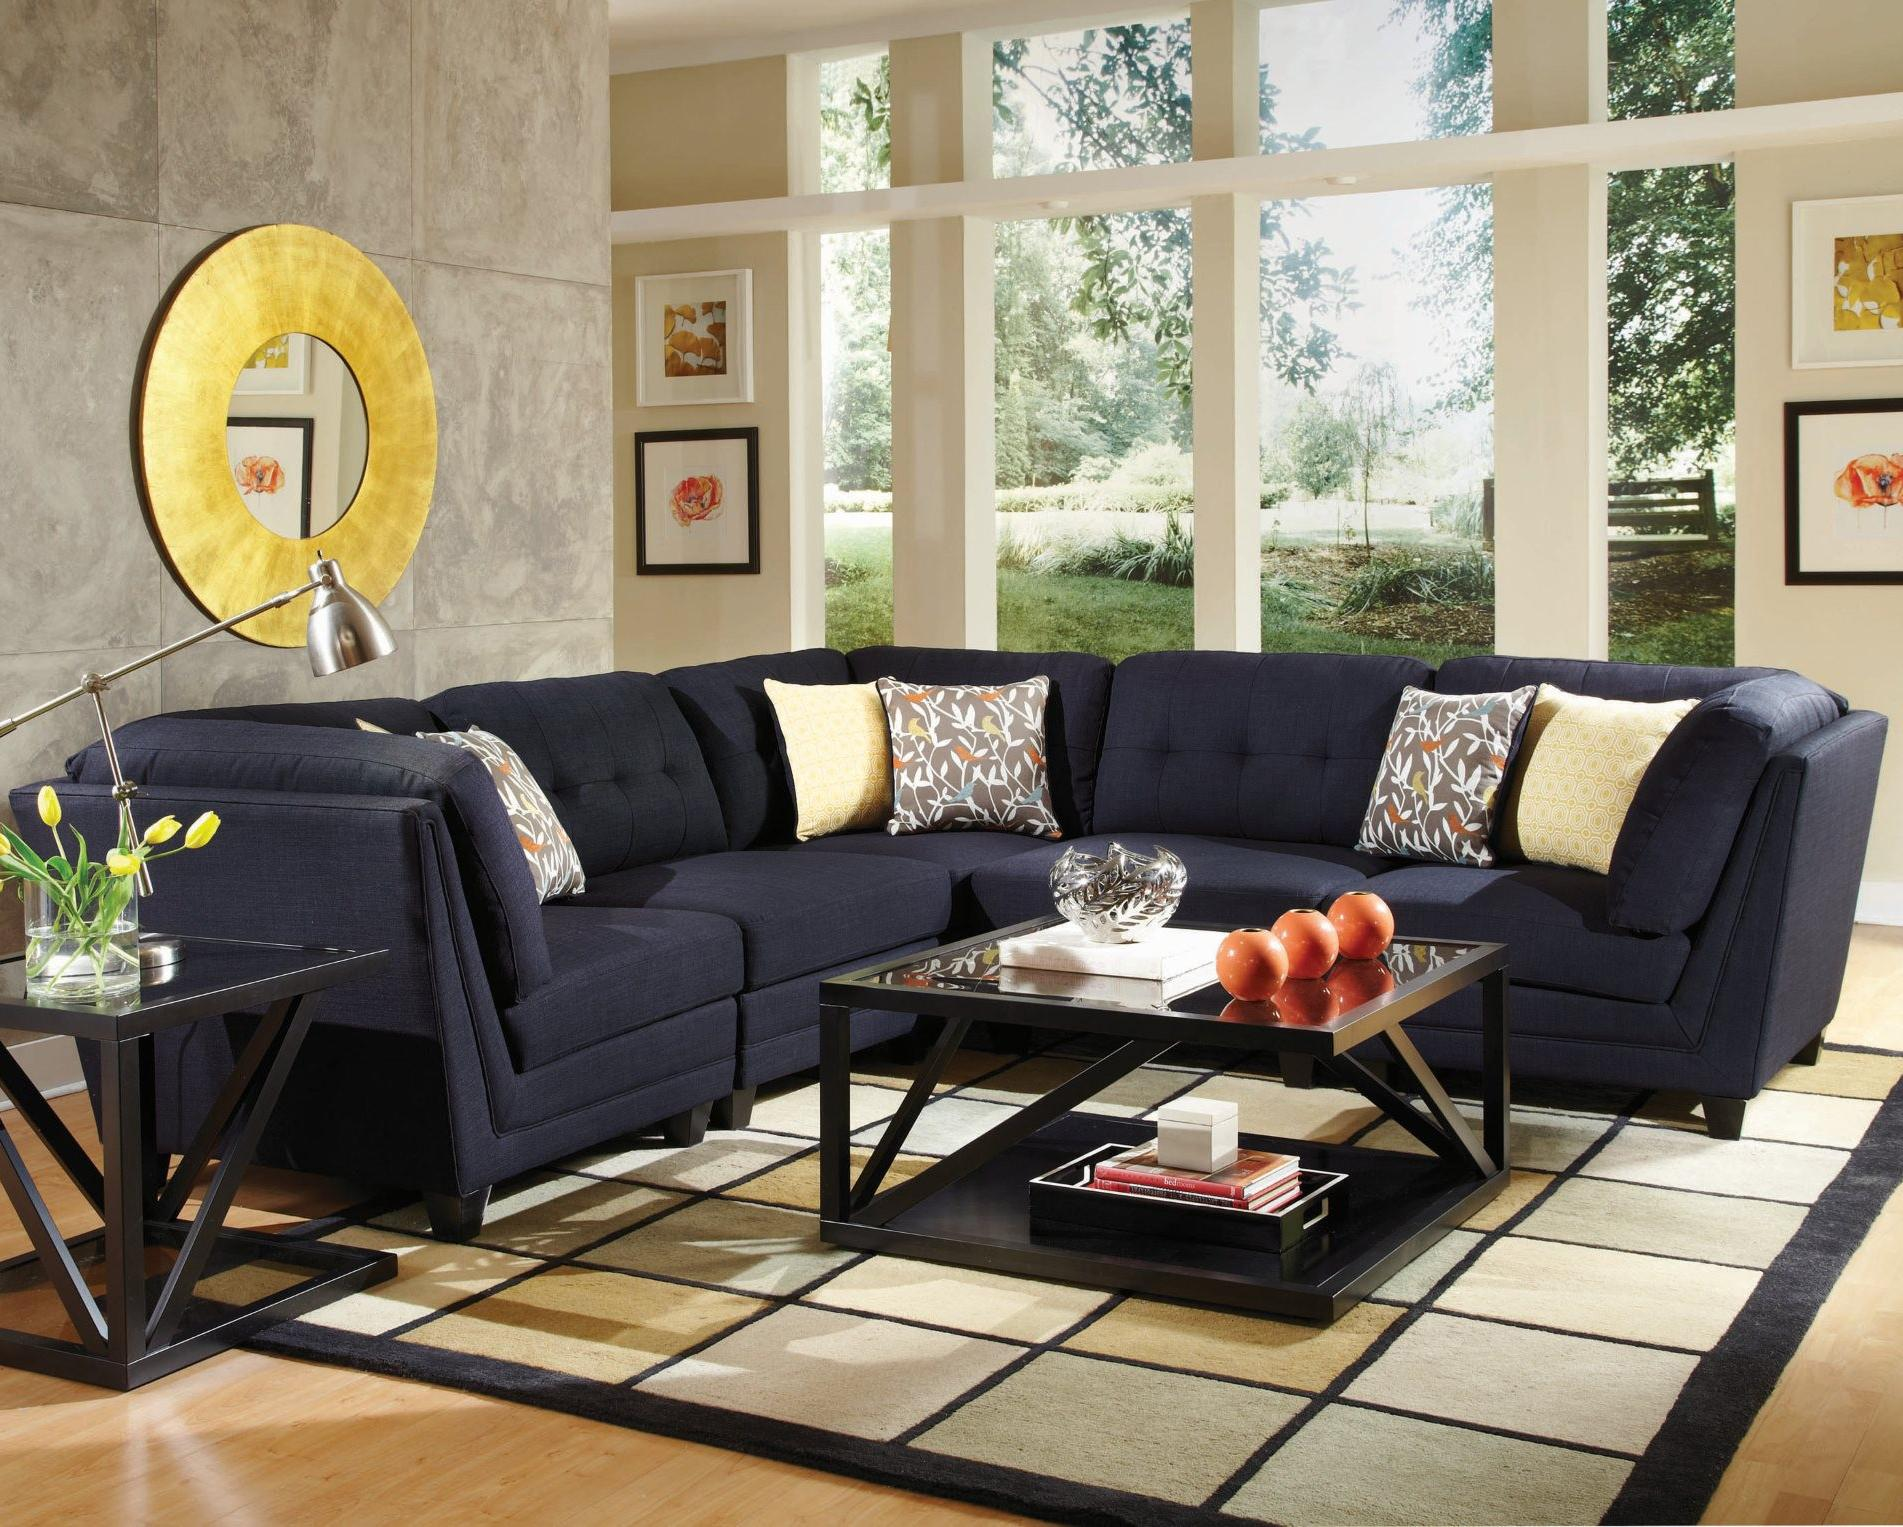 Keaton 5 Piece Sectional Sofa by Coaster at Lapeer Furniture & Mattress Center